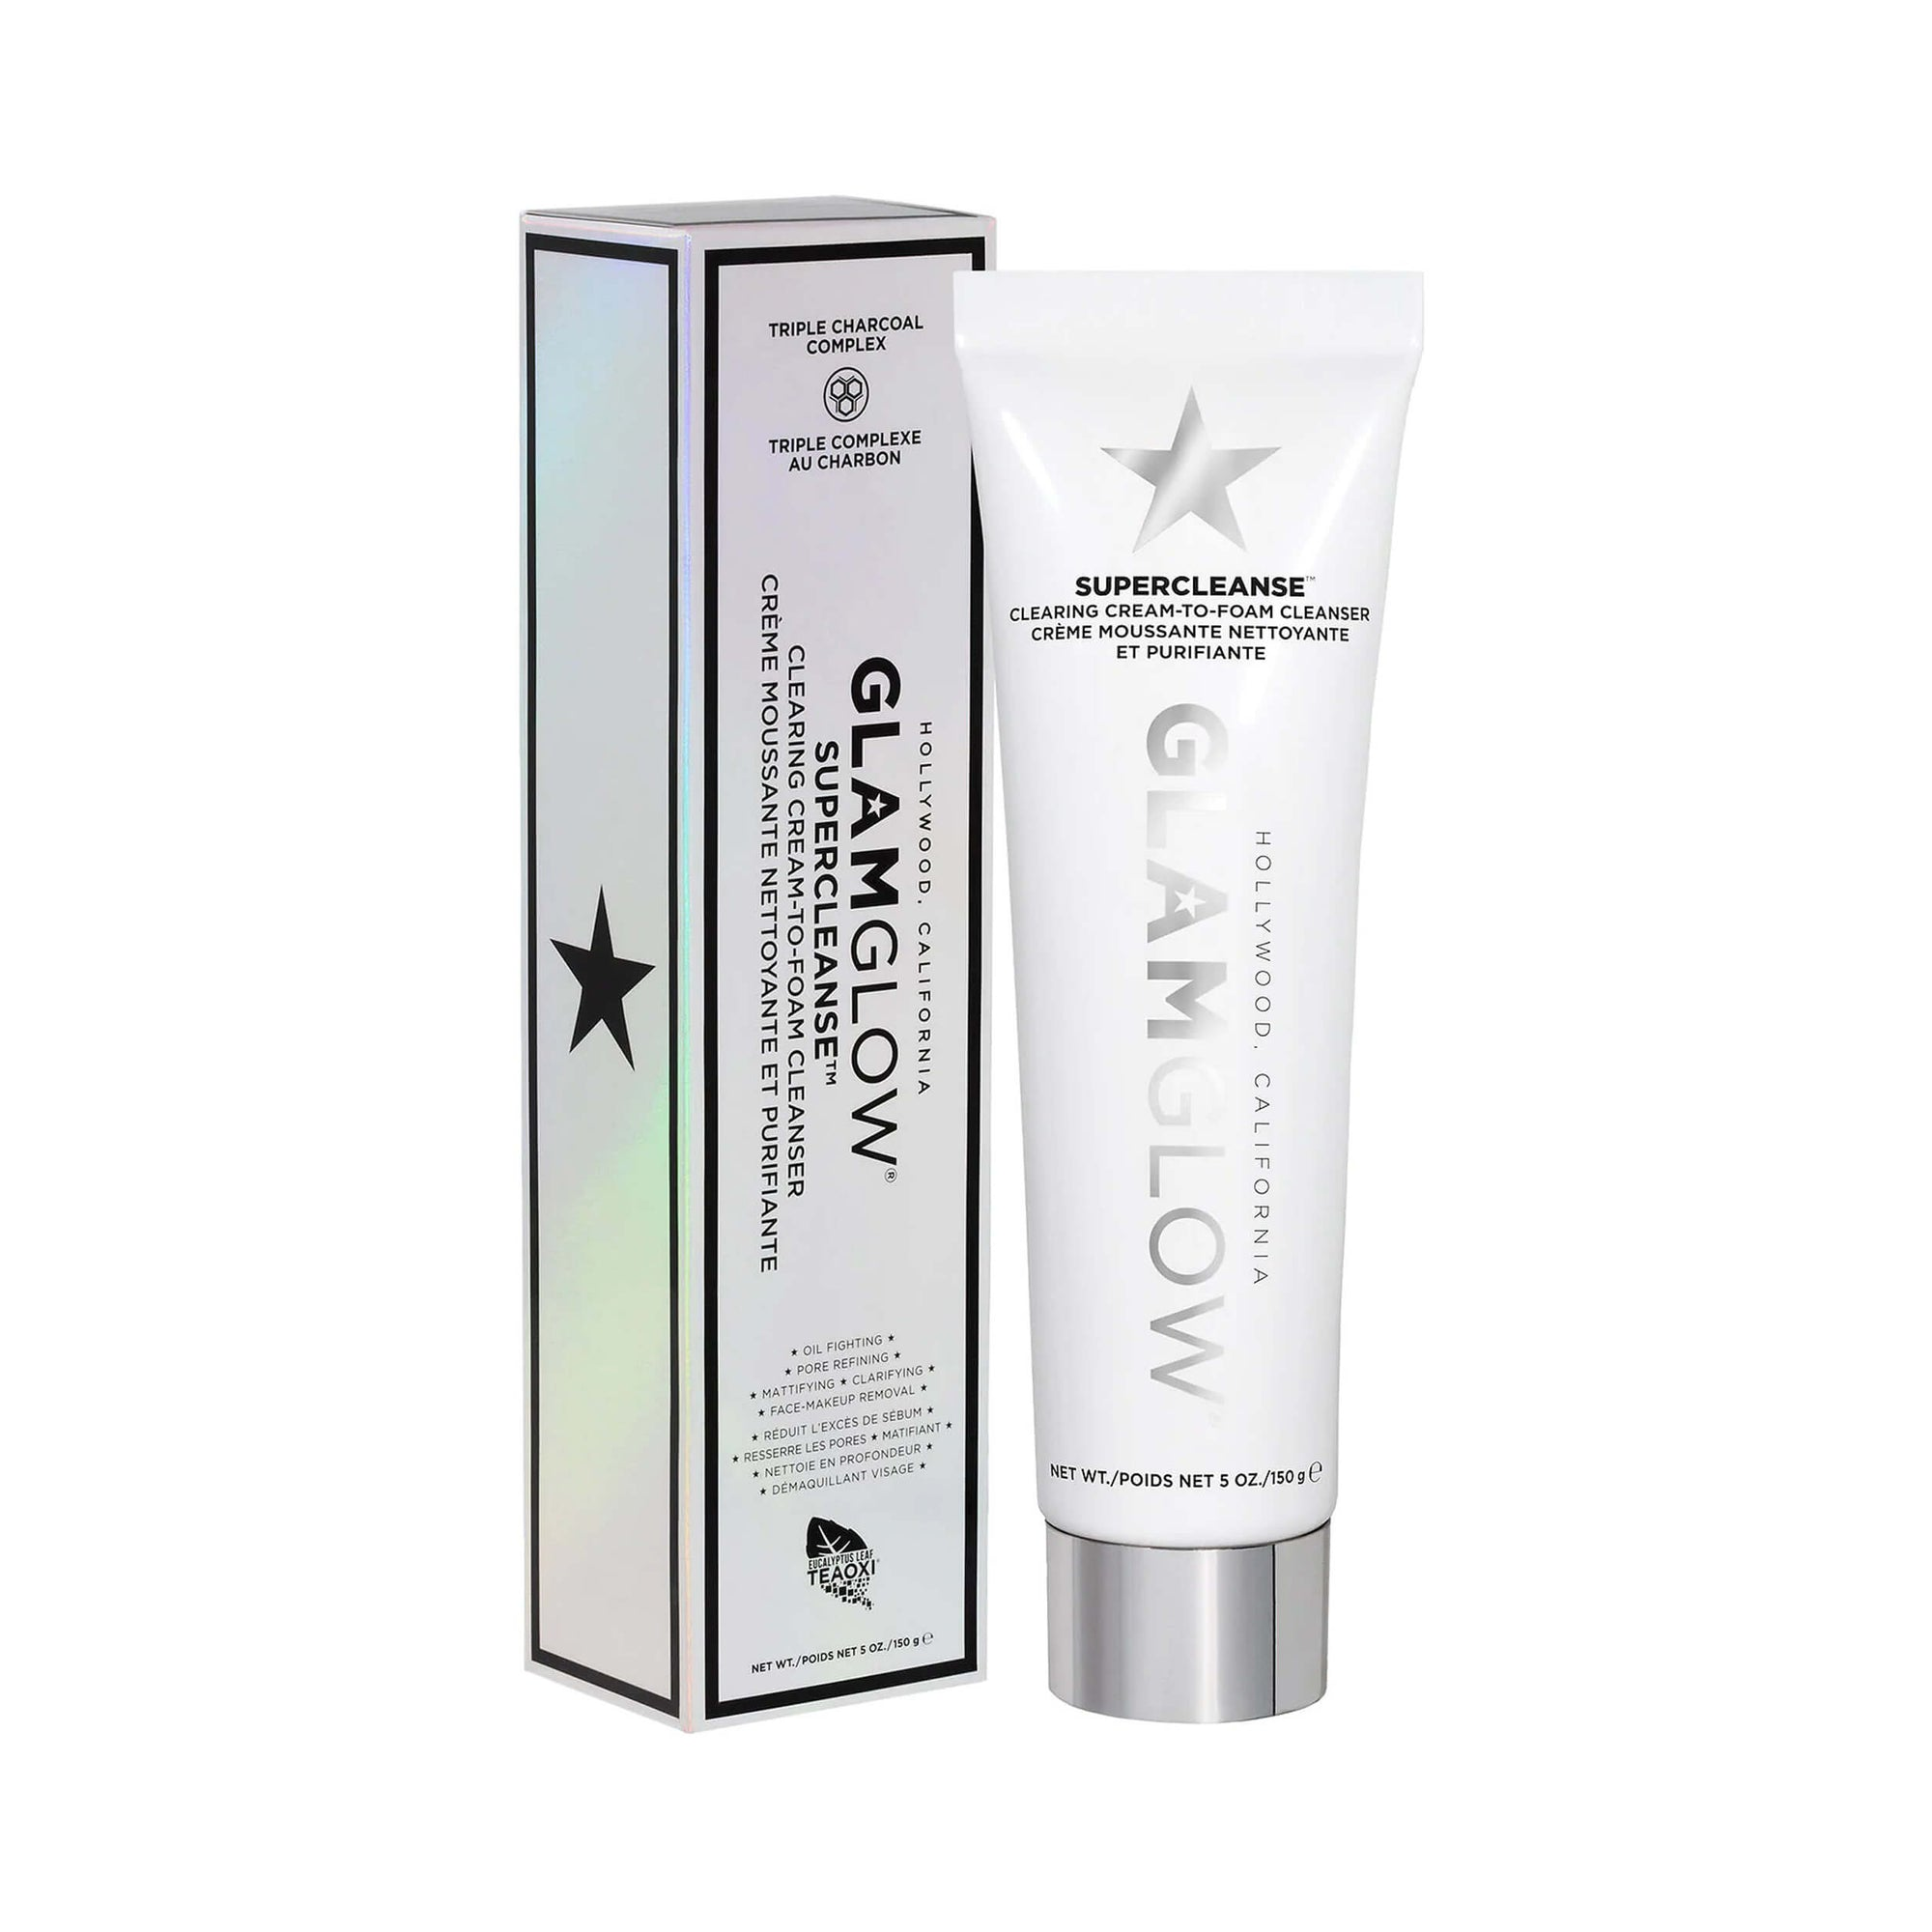 Glamglow SUPERCLEANSE Clearing Cream-to-Foam Cleanser 150 g